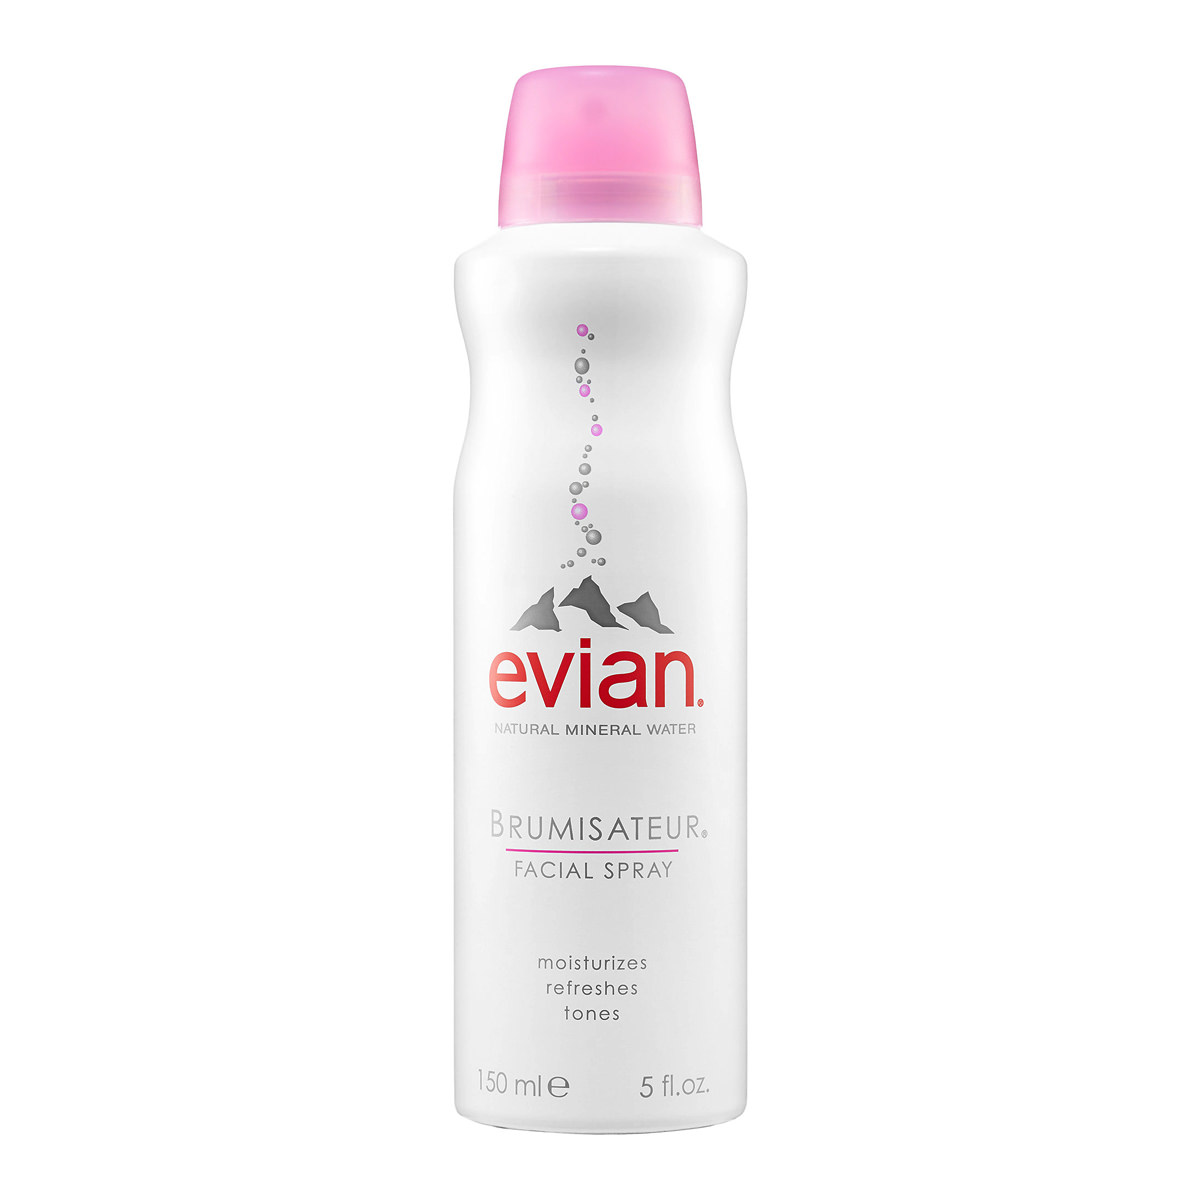 Evian-Facial-Spray-150ml-sfw